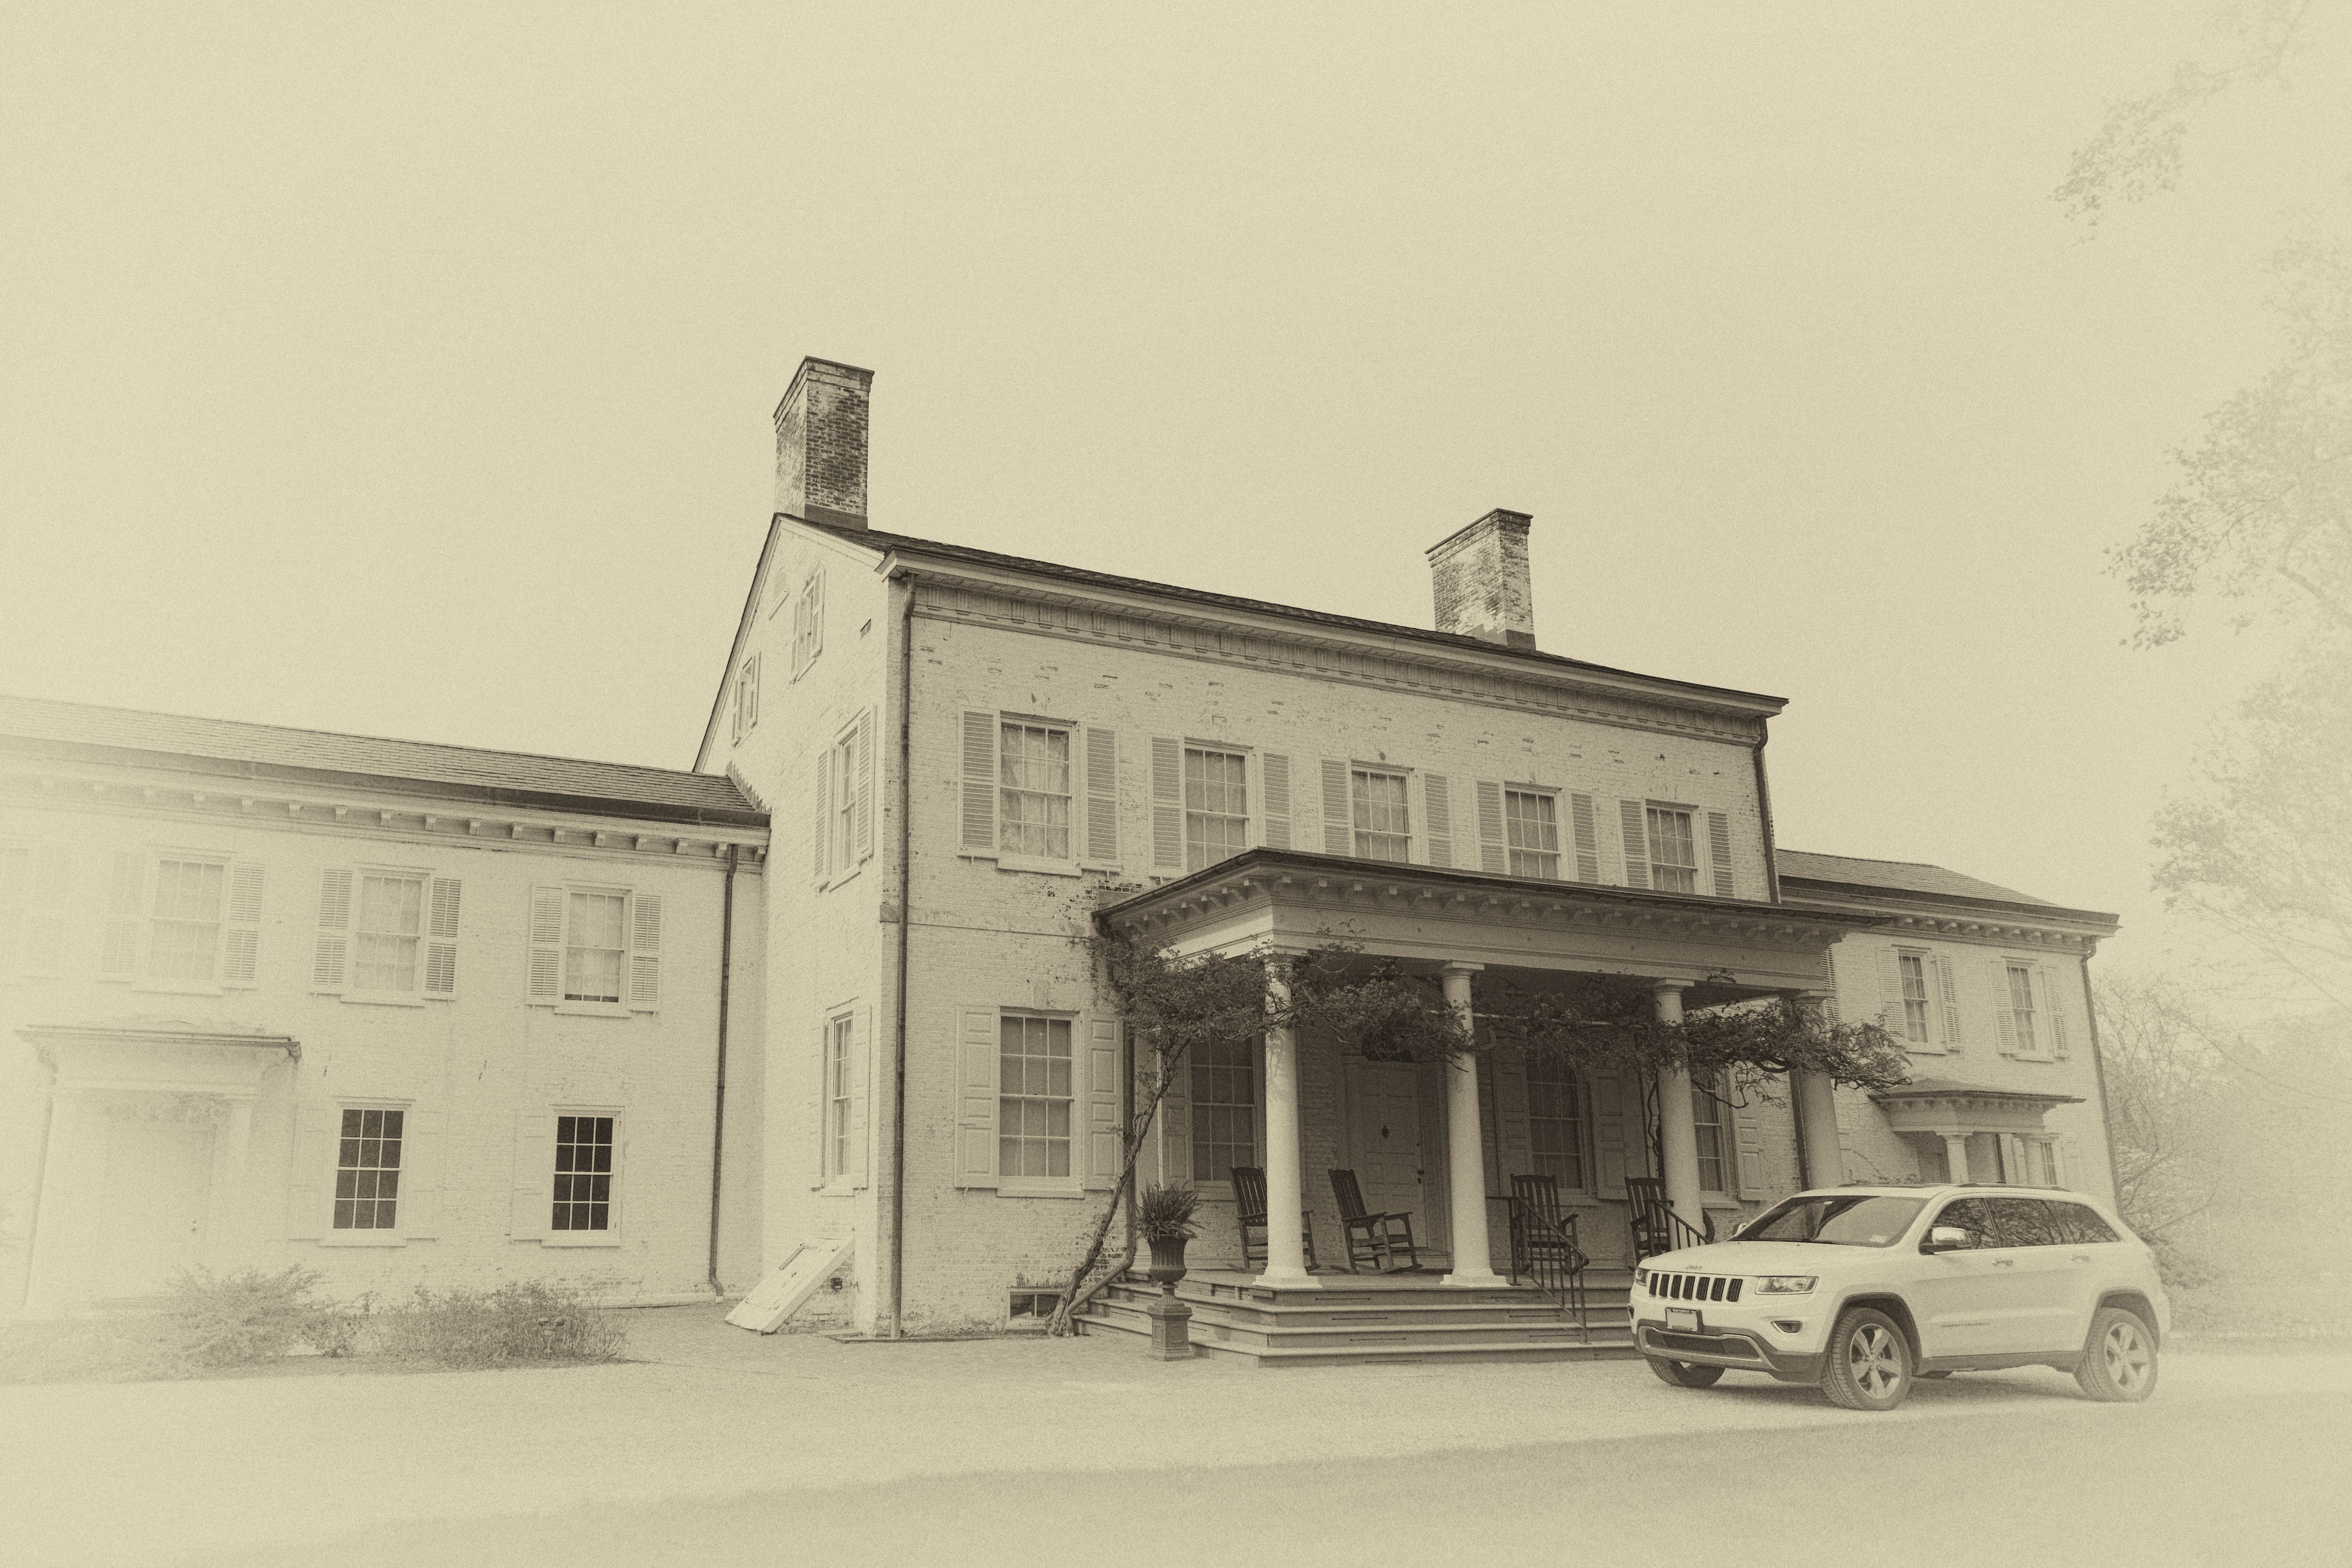 Morven Museum with 2014 Jeep Grand Cherokee parked in front of it, in sepia tone.